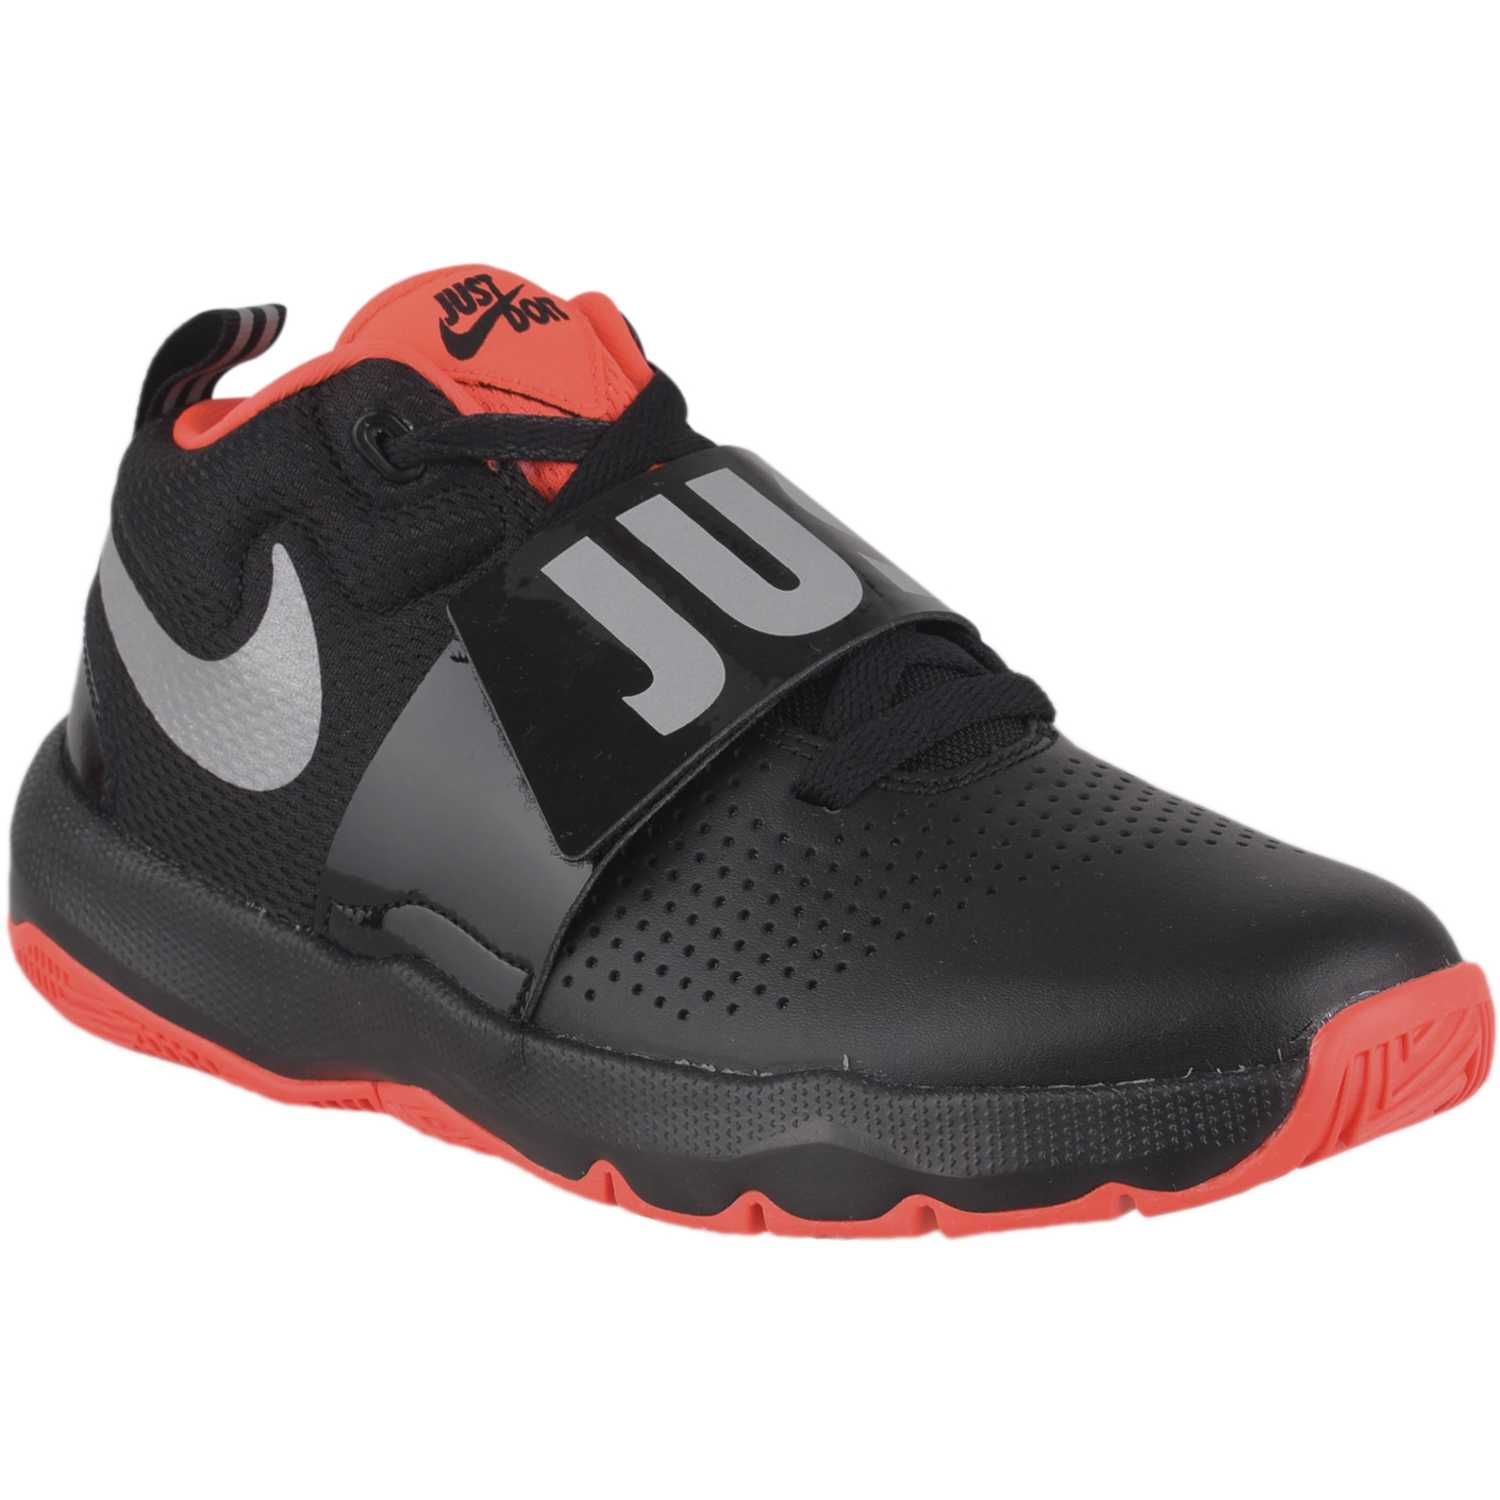 Nike team hustle d 8 jdi bg Negro / rojo Fitness y Cross-Training